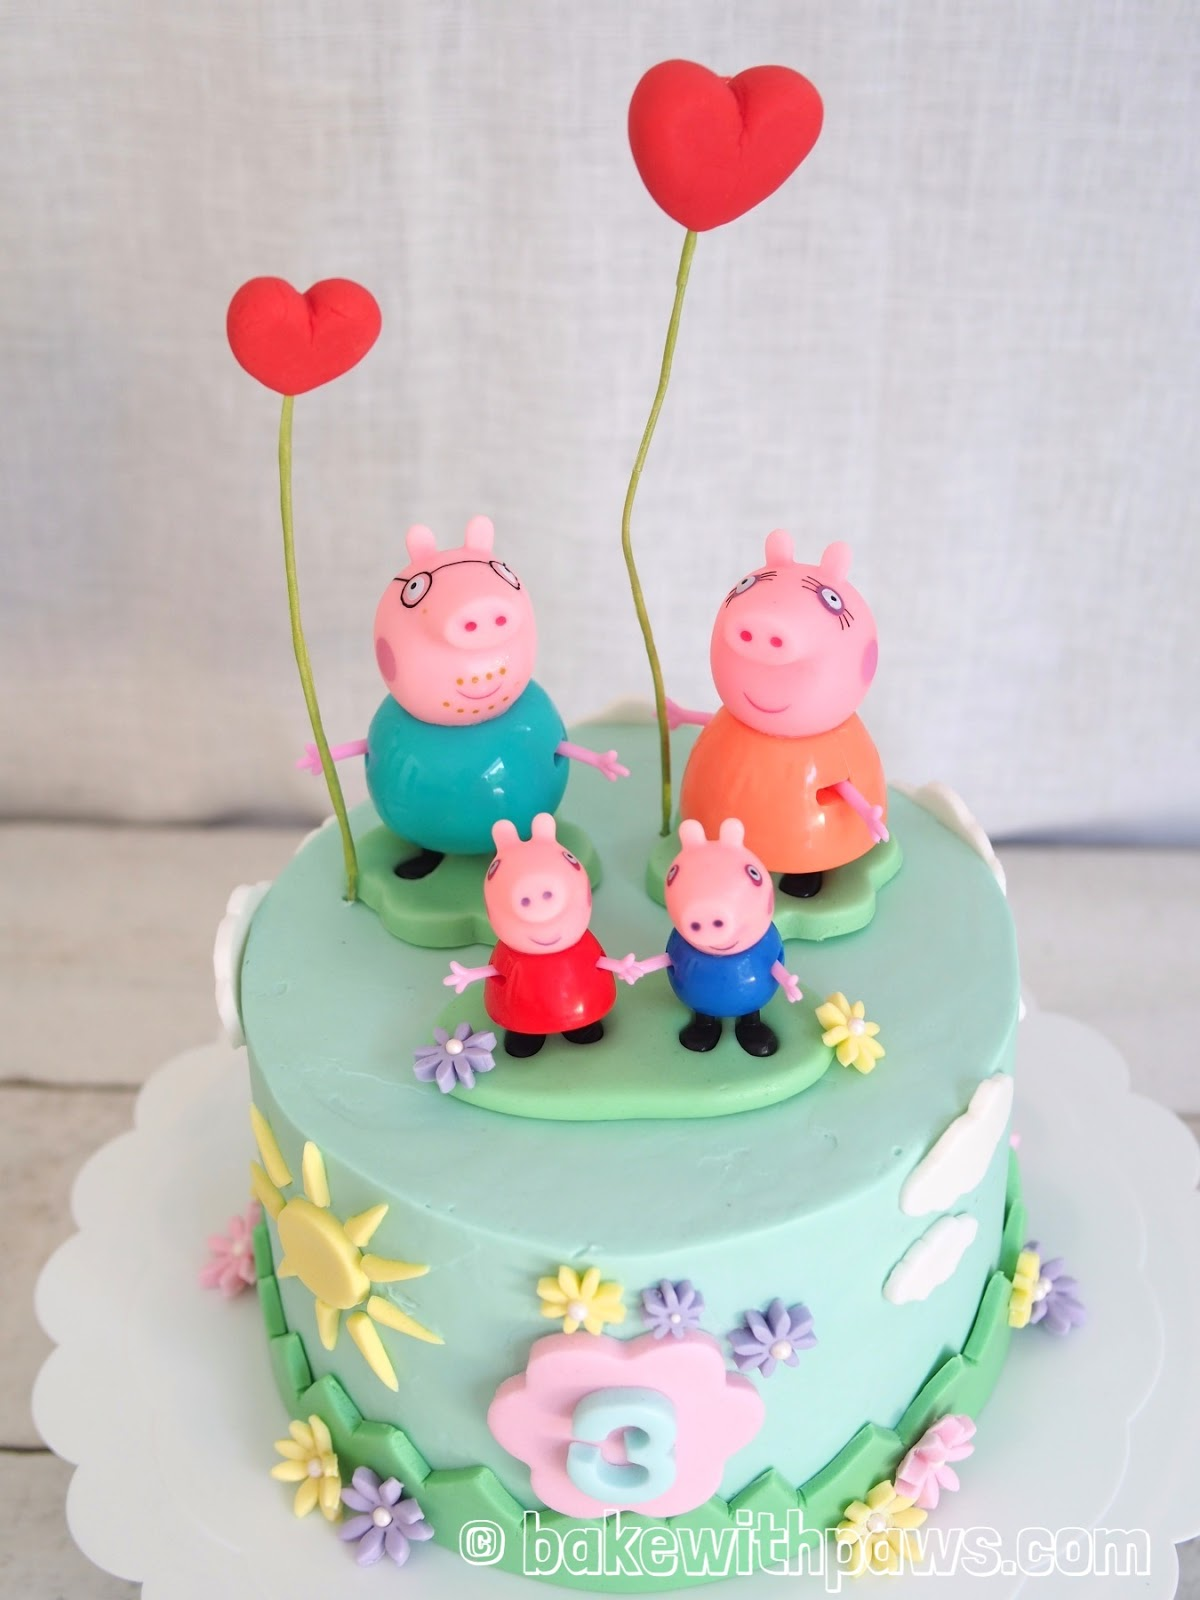 Admirable Peppa Pig Birthday Cake Bake With Paws Personalised Birthday Cards Paralily Jamesorg